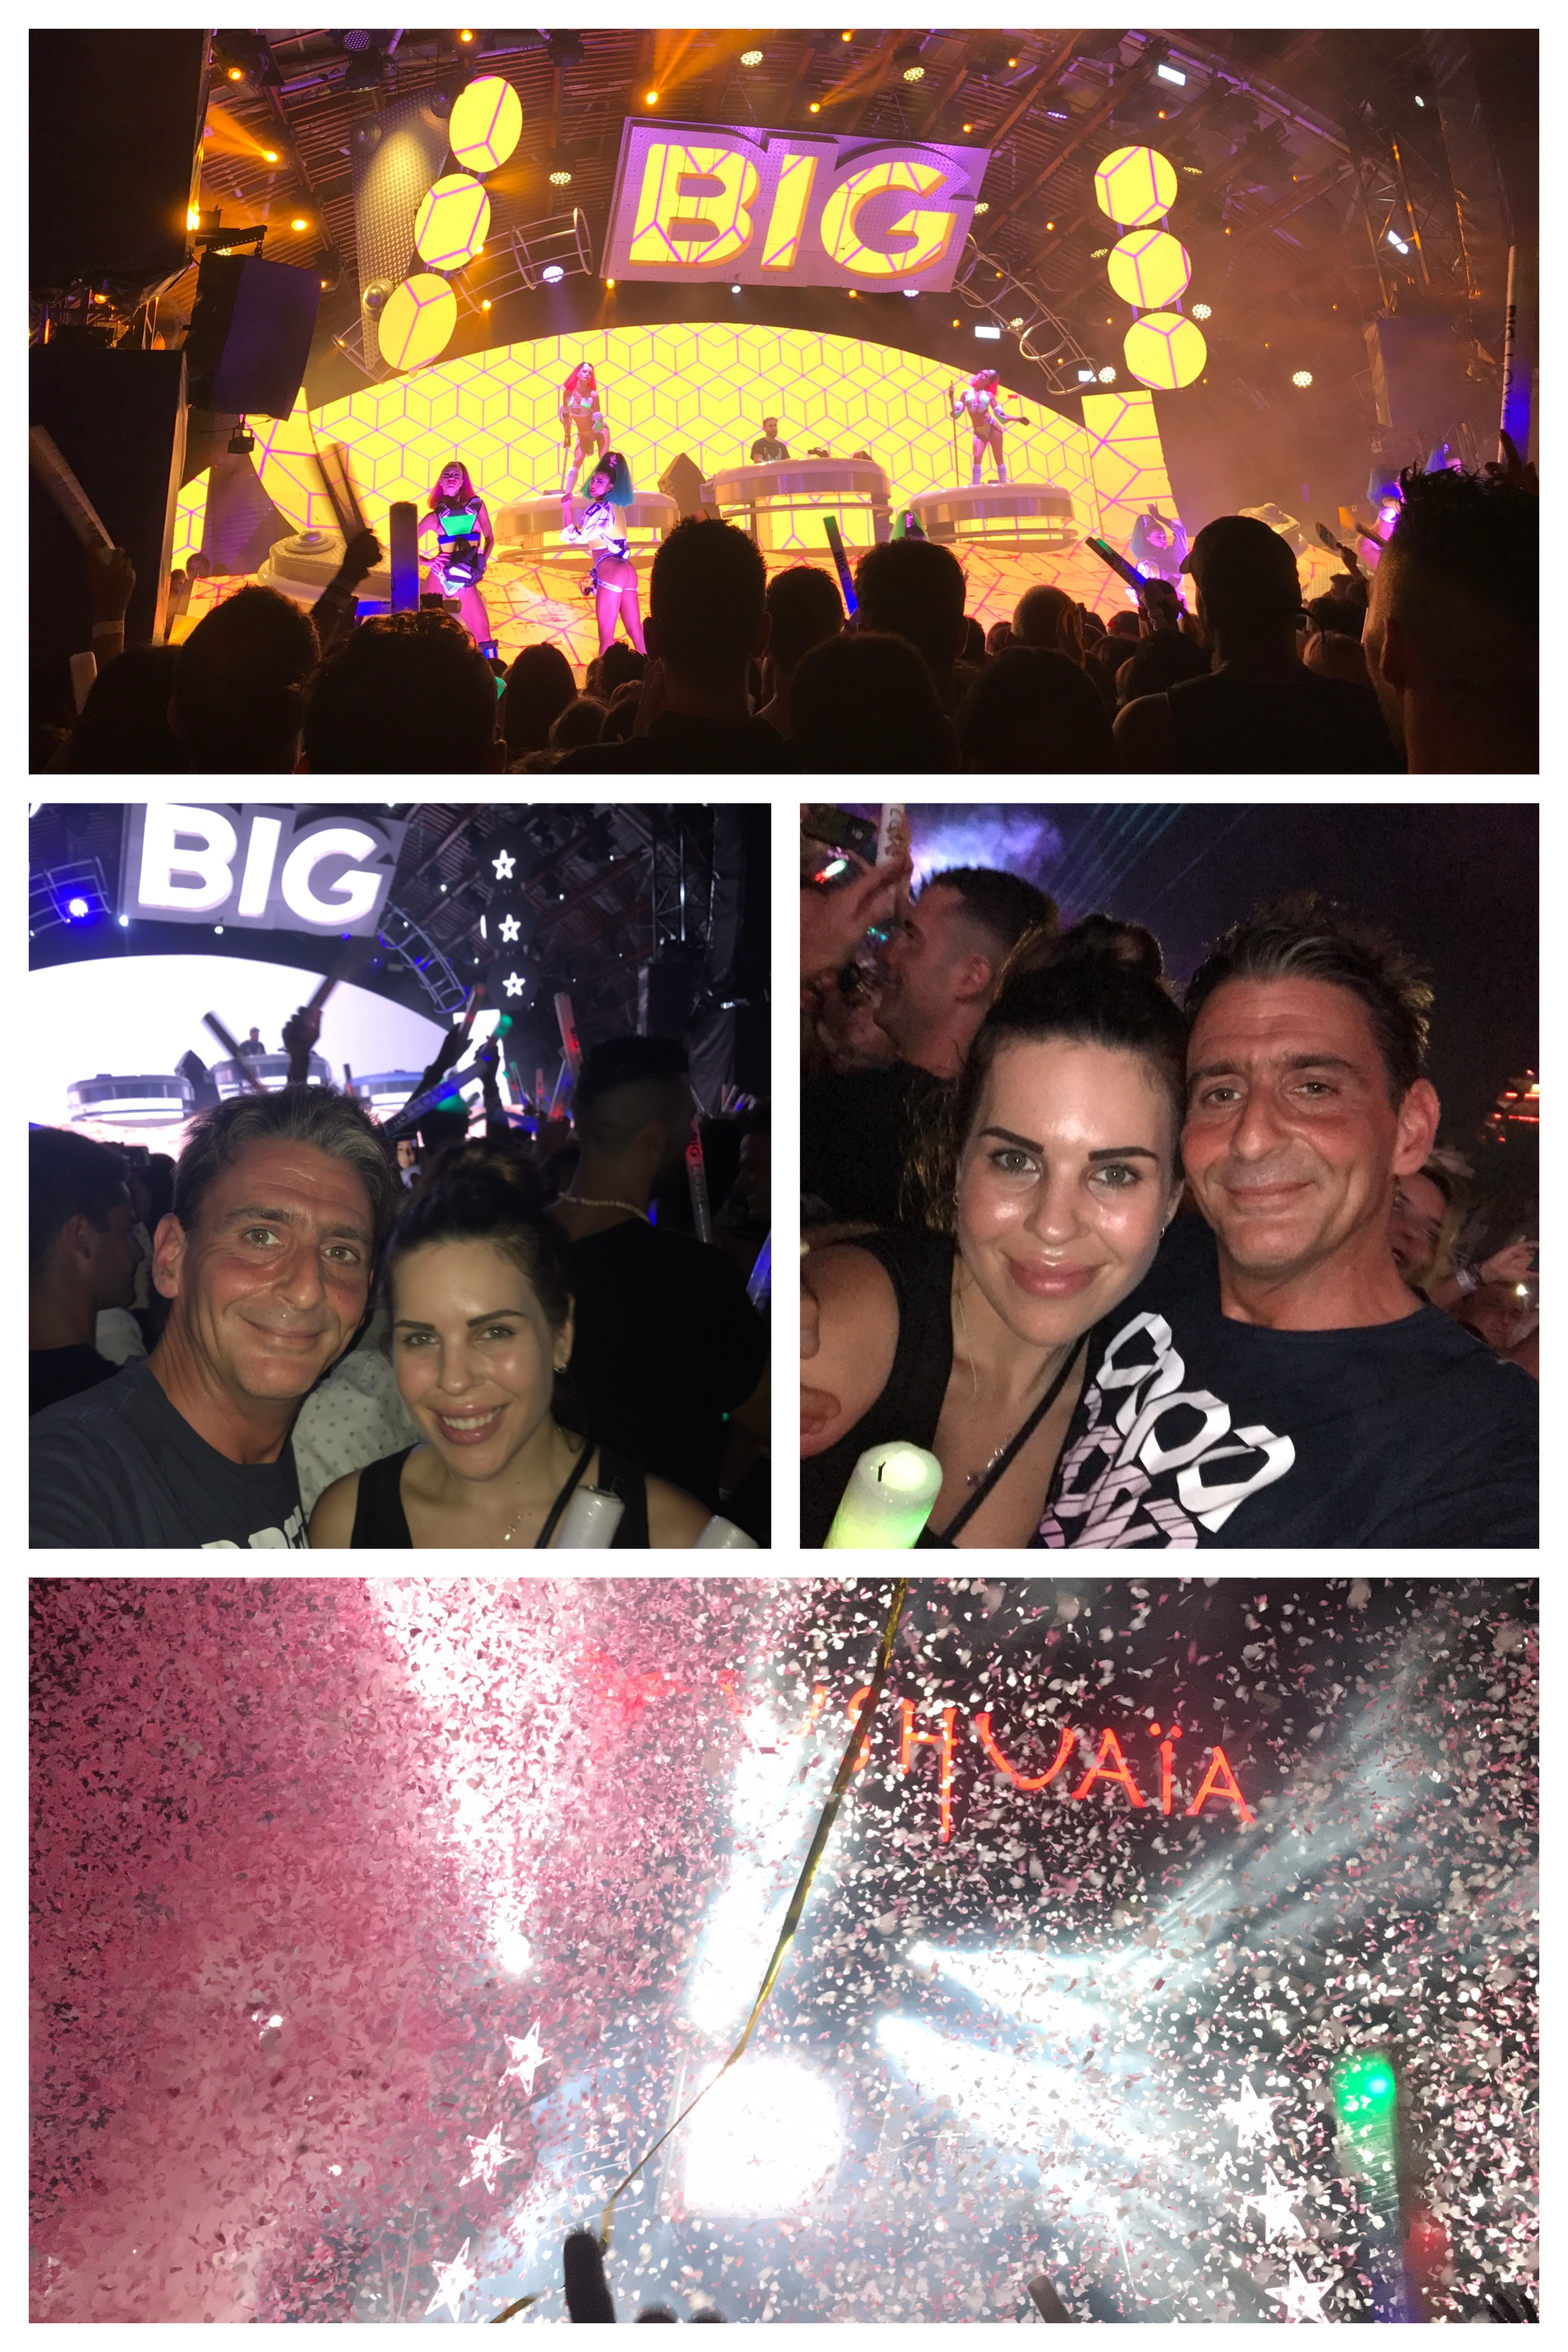 BIG by David Guetta at Ushuaïa